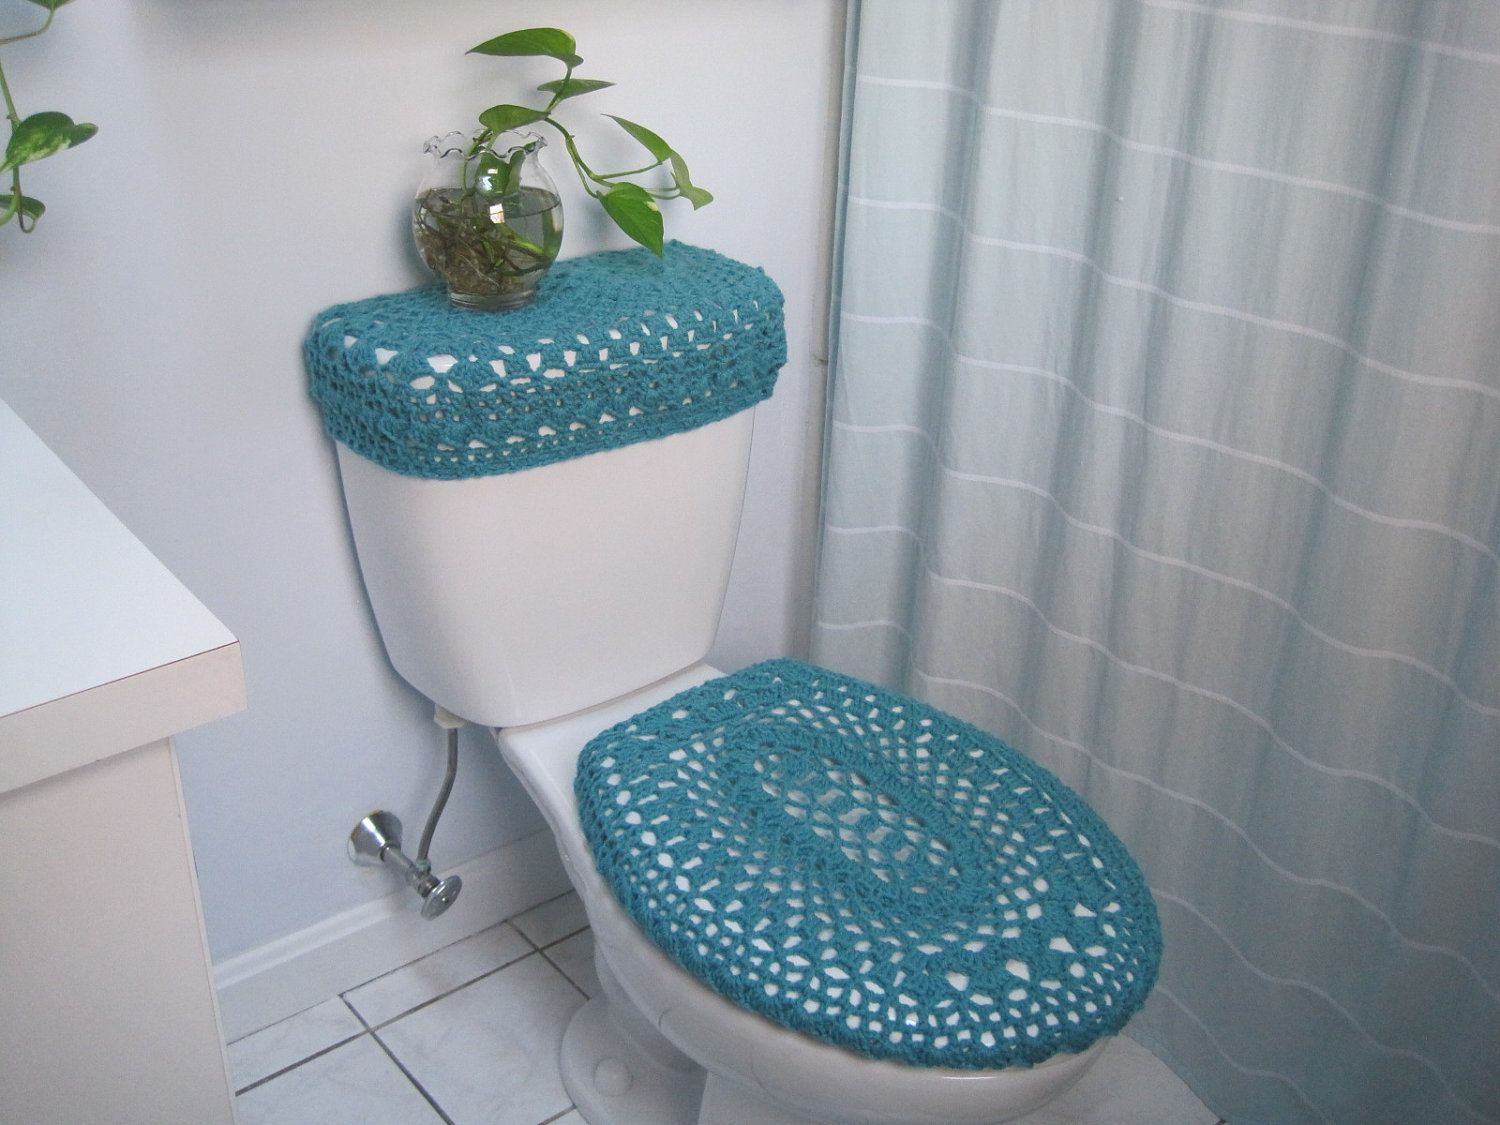 Set Of 2 Crochet Covers For Toilet Seat Toilet Tank Lid Cozies